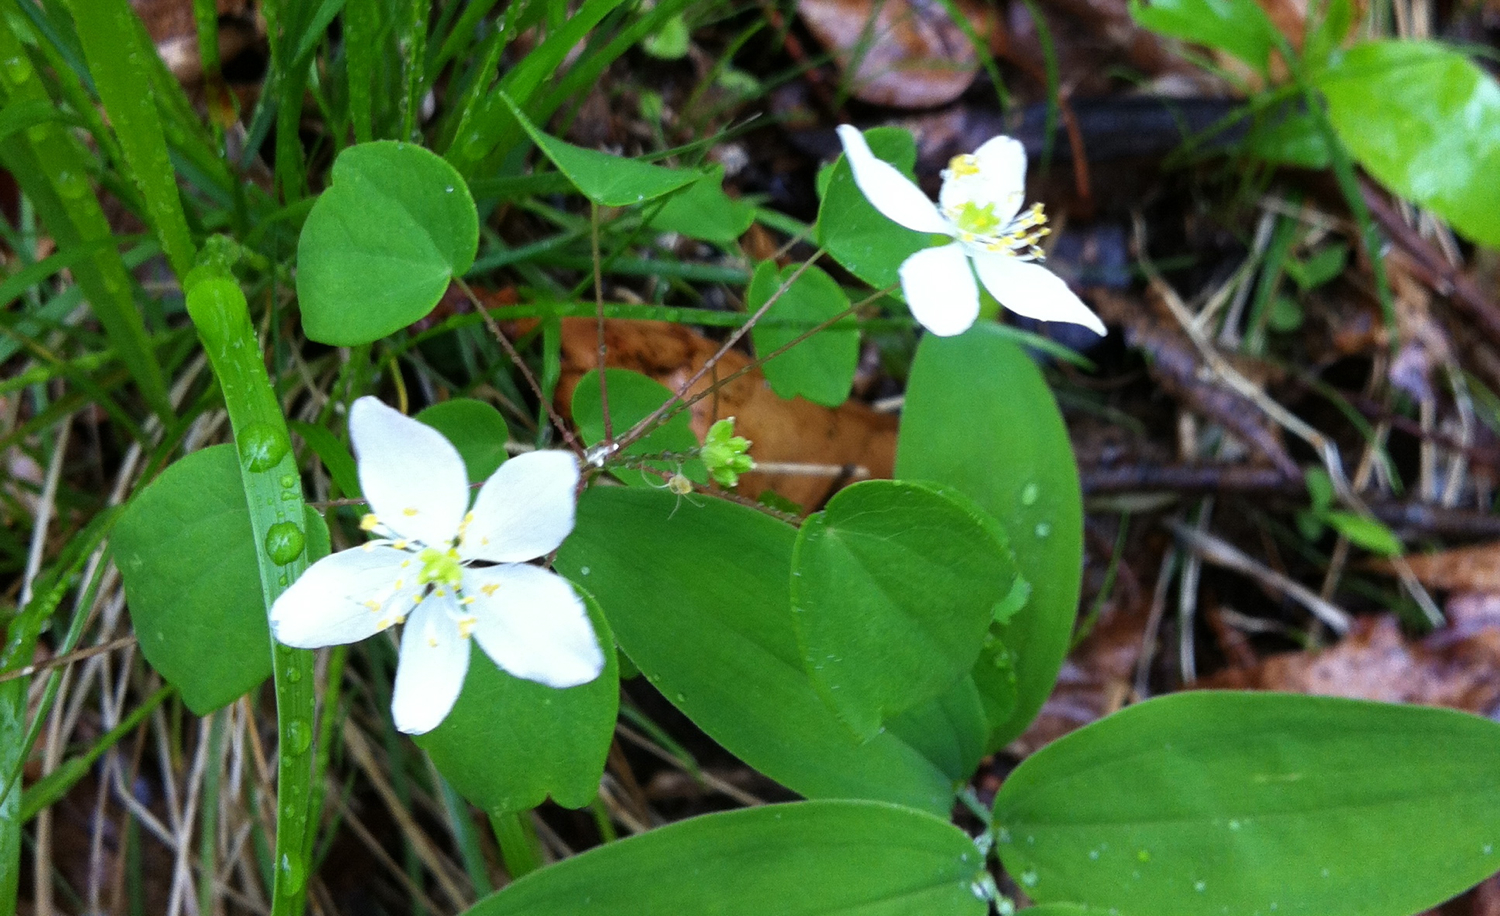 Rue Anemone  Thalictrum thalictroides  (L.) A.J.Eames & B.Boivin  29 April 2013, Stroud Preserve, Chester County, Pennsylvania.